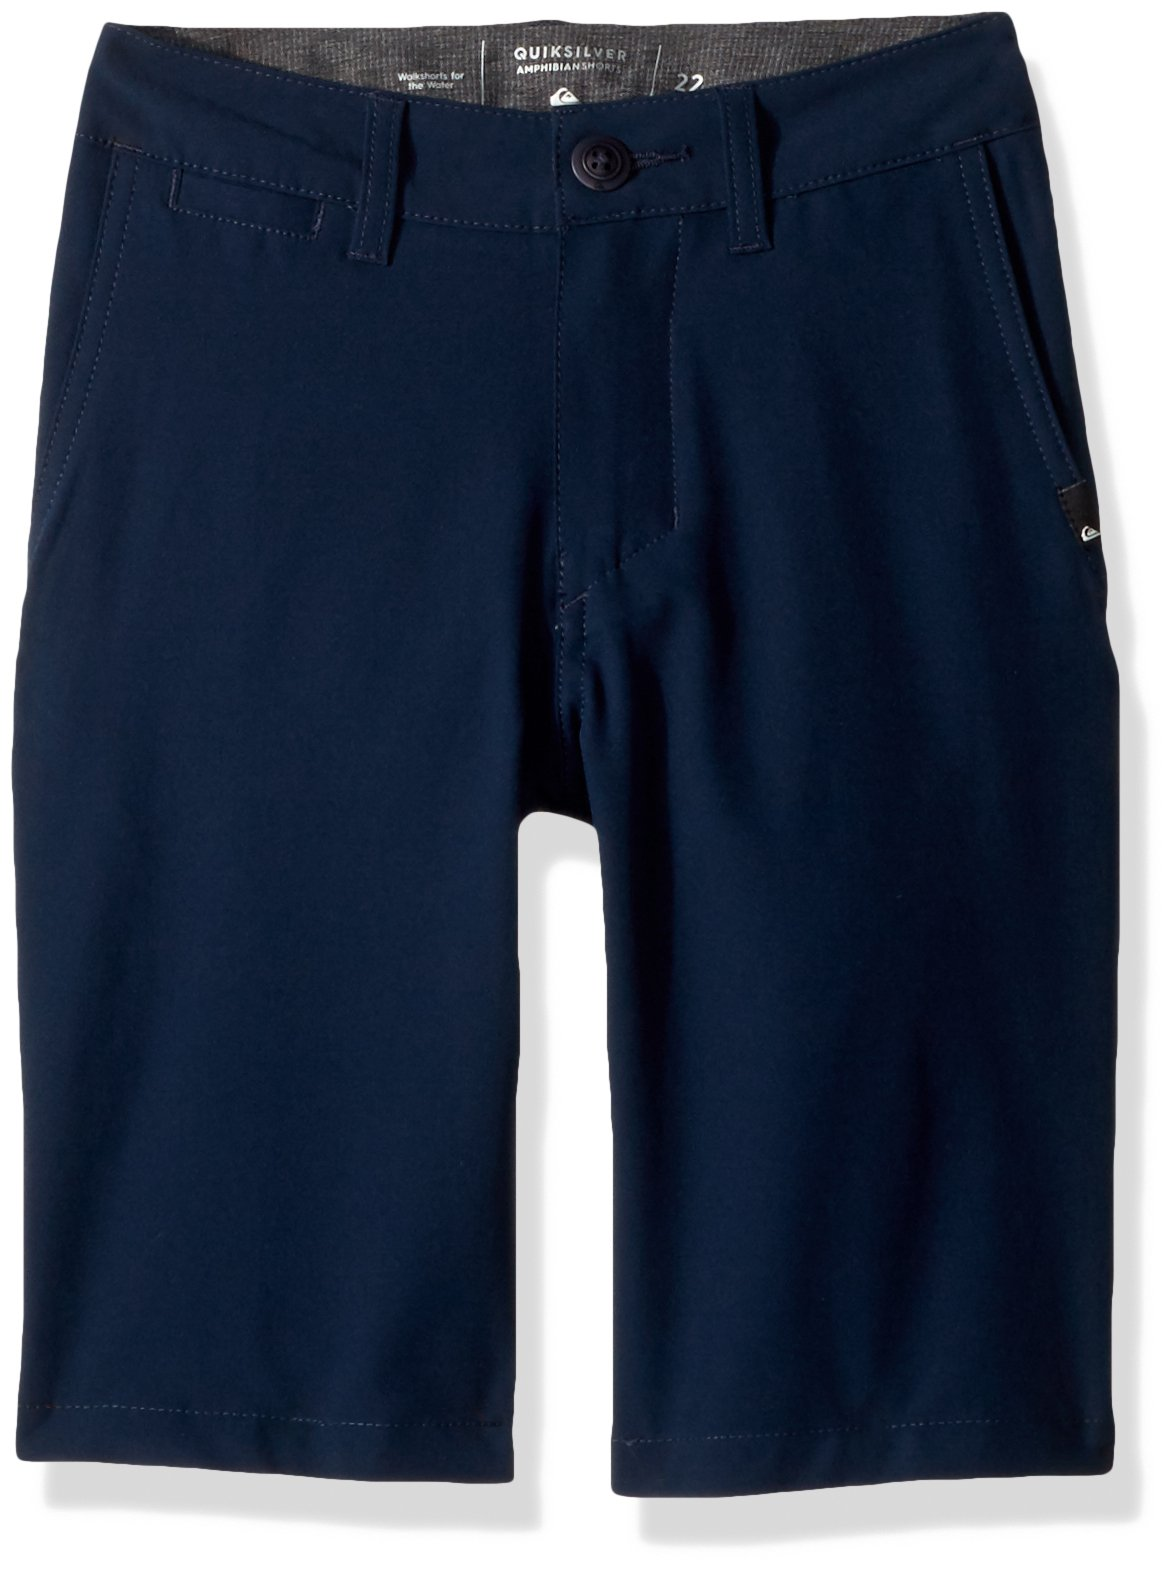 Quiksilver Big Boys' Union Amphibian Kids Swim Trunks, Navy Blazer, 28/14